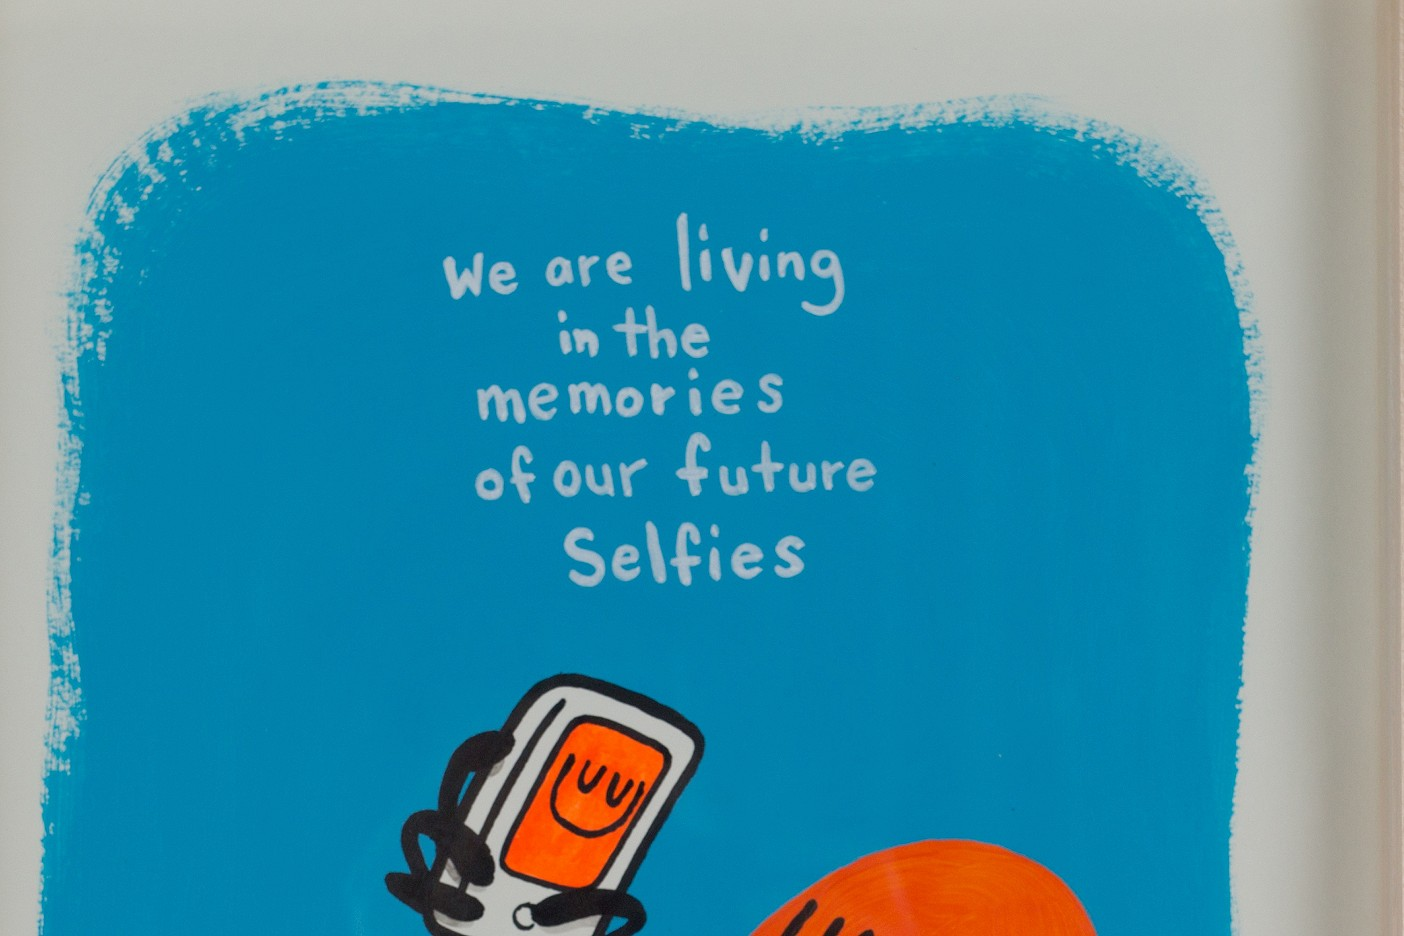 Our future selfies